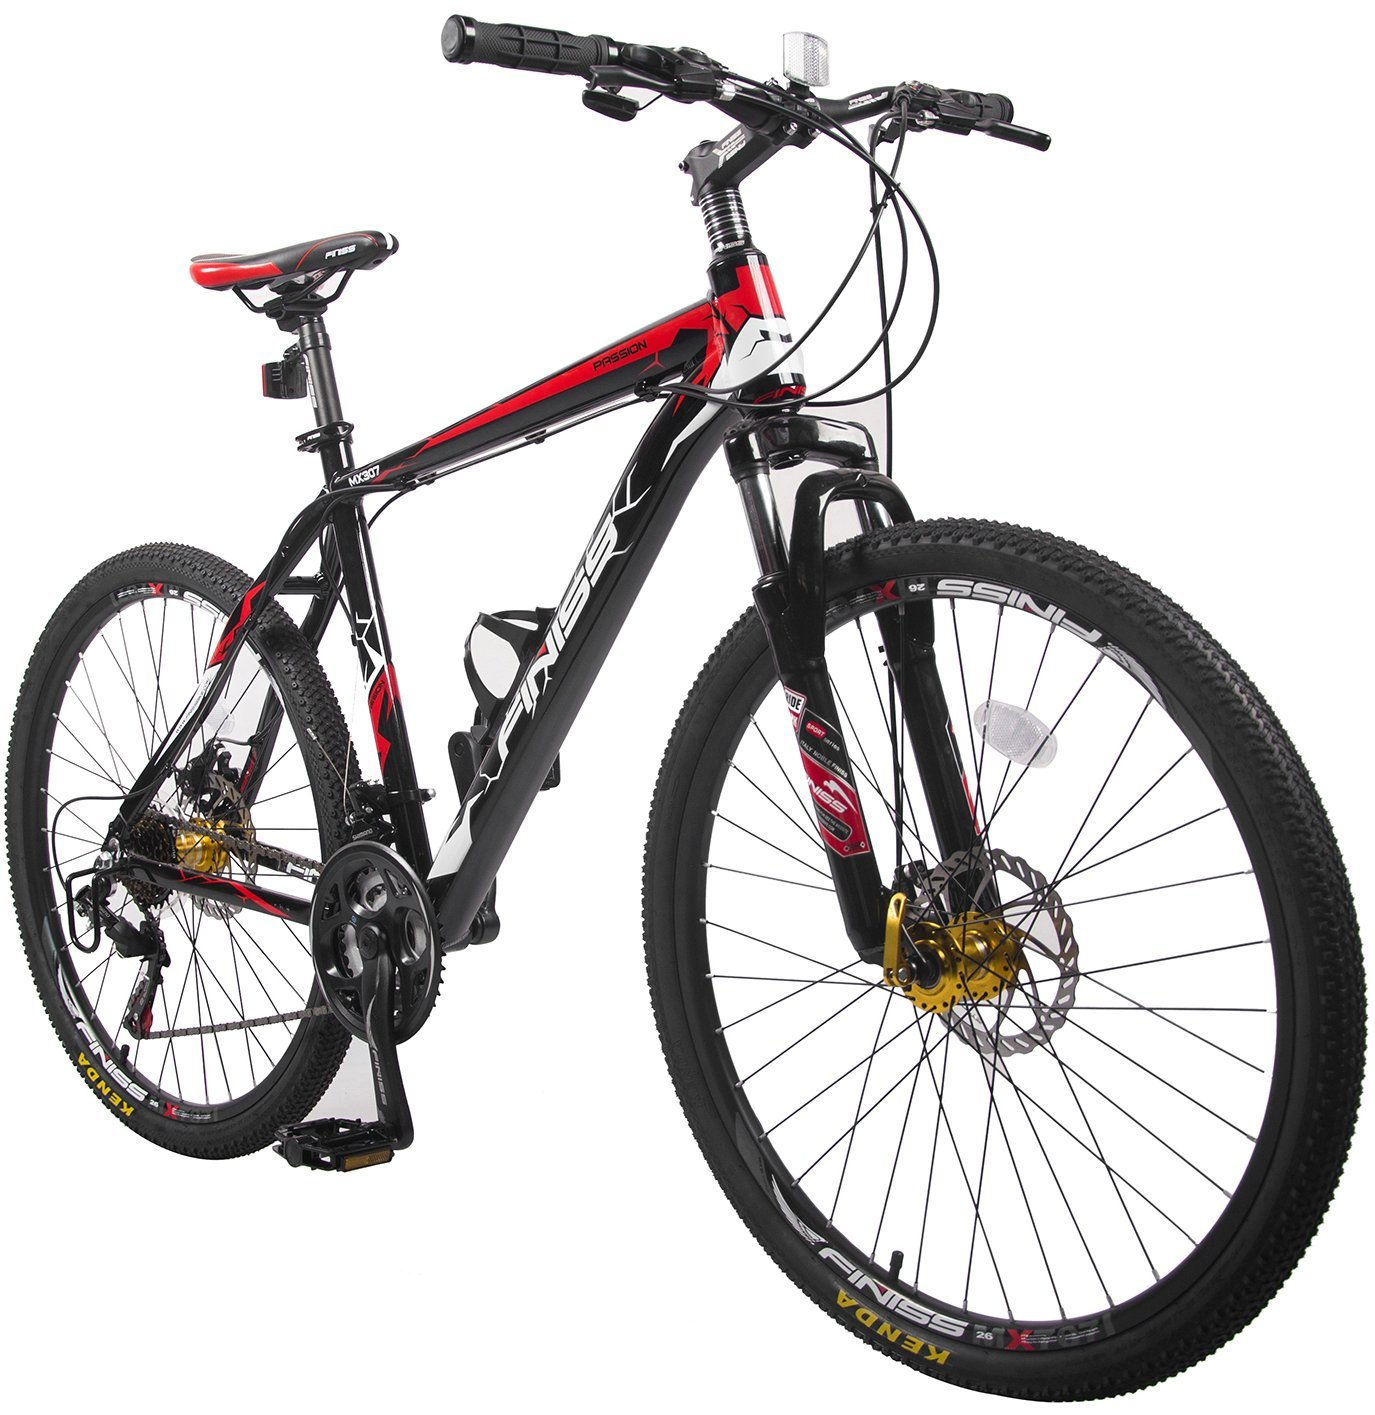 mountain bikes Save r1,00000 silverback stride 650b mountain bike r4,99999 r3,99999 save r20000 silverback stride 27 d 650b mountain bike r5,49999 r 5,29999 scott aspect 770 650b mountain bike r6,49998 fuji bighorn 12 275 mountain bike r24,99998 ktm kapoho 273 2017 650b+ mountain bike r 34,99999.